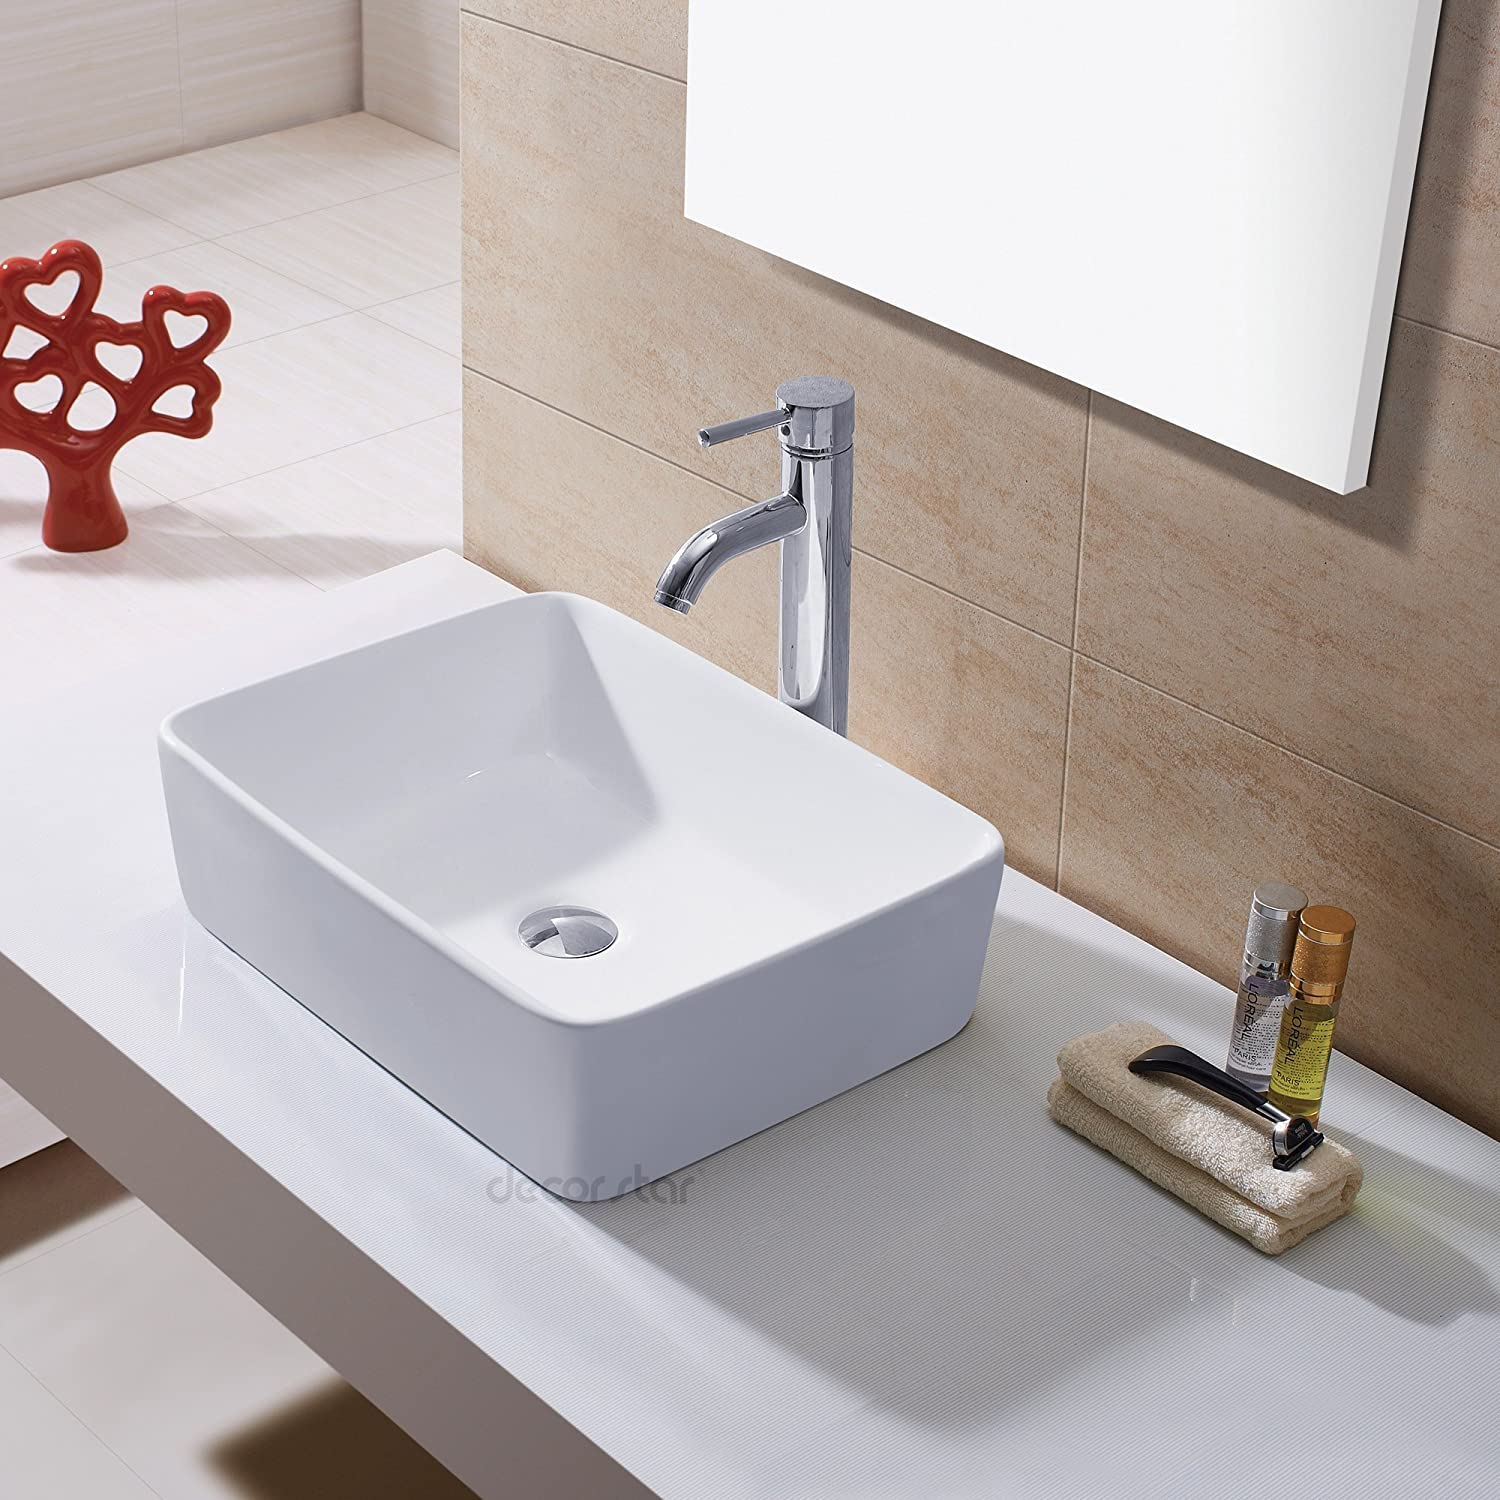 Bathroom available in 5 finishes vessel bathroom sinks msrp 425 - Decor Star Cb 013 Bathroom Porcelain Ceramic Vessel Vanity Sink Art Basin Amazon Com